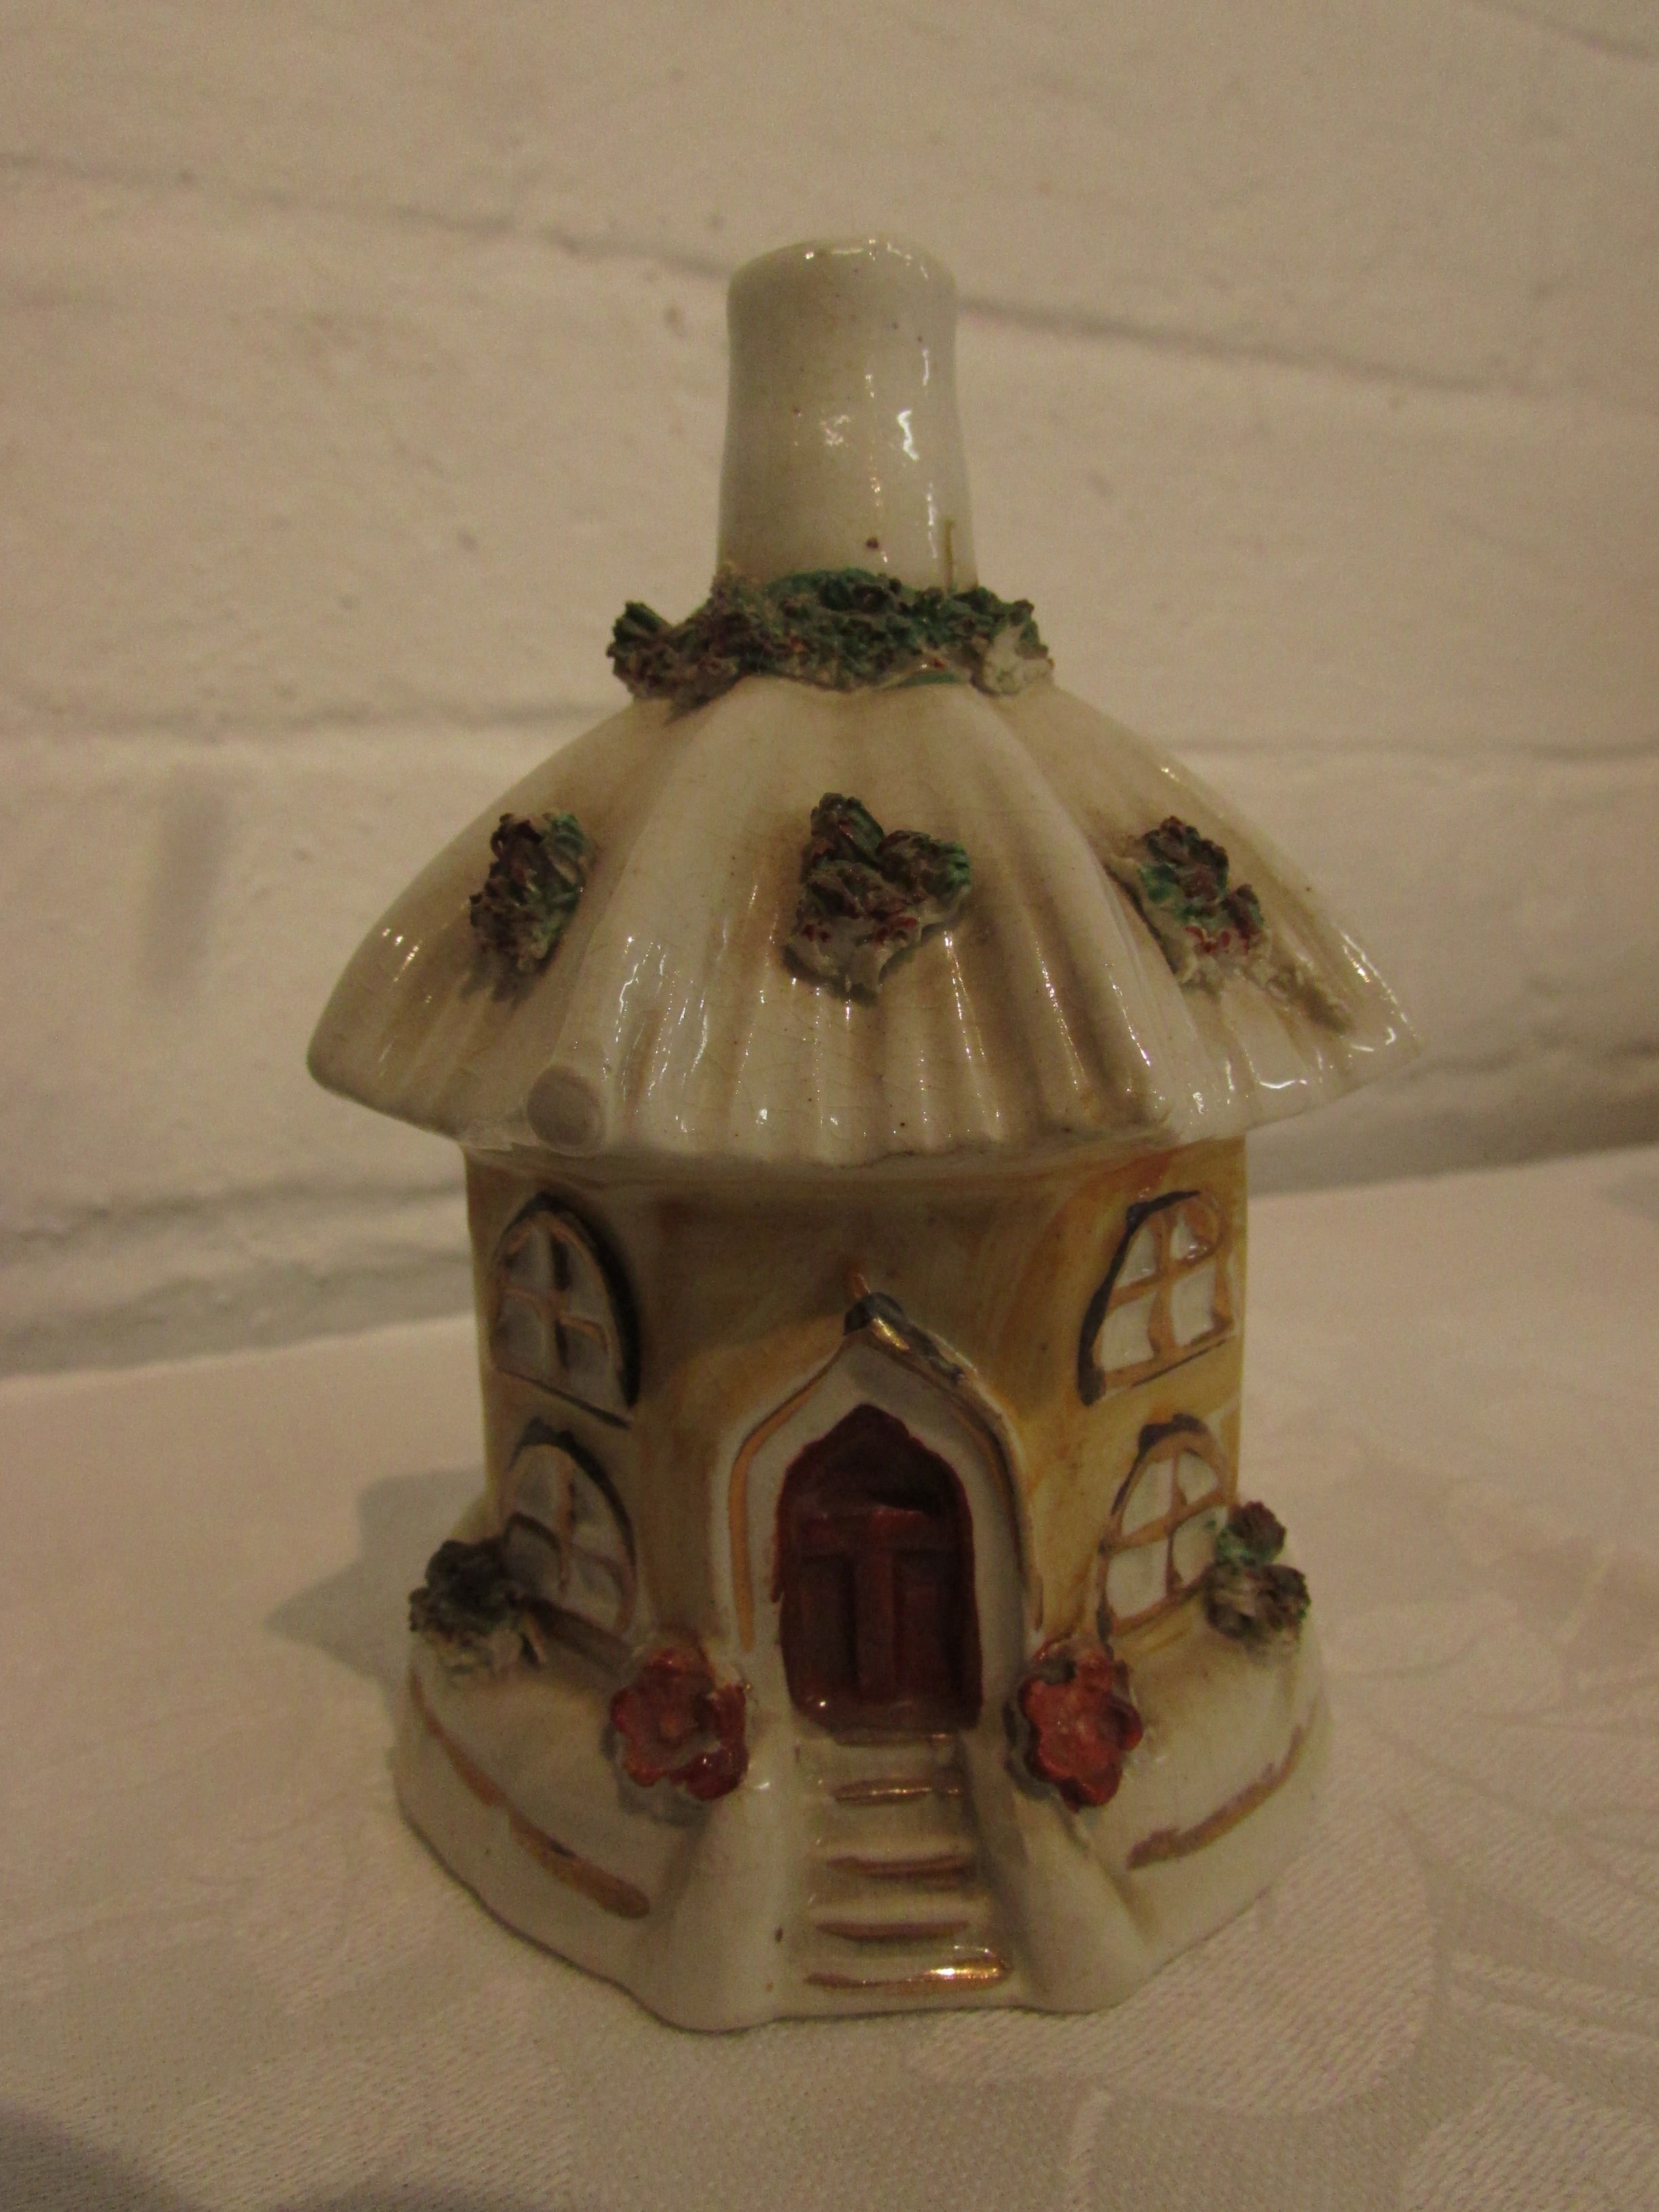 Lot 17 - 19th century Staffordshire pottery turreted castle pastille burner (height 15.5cm), a